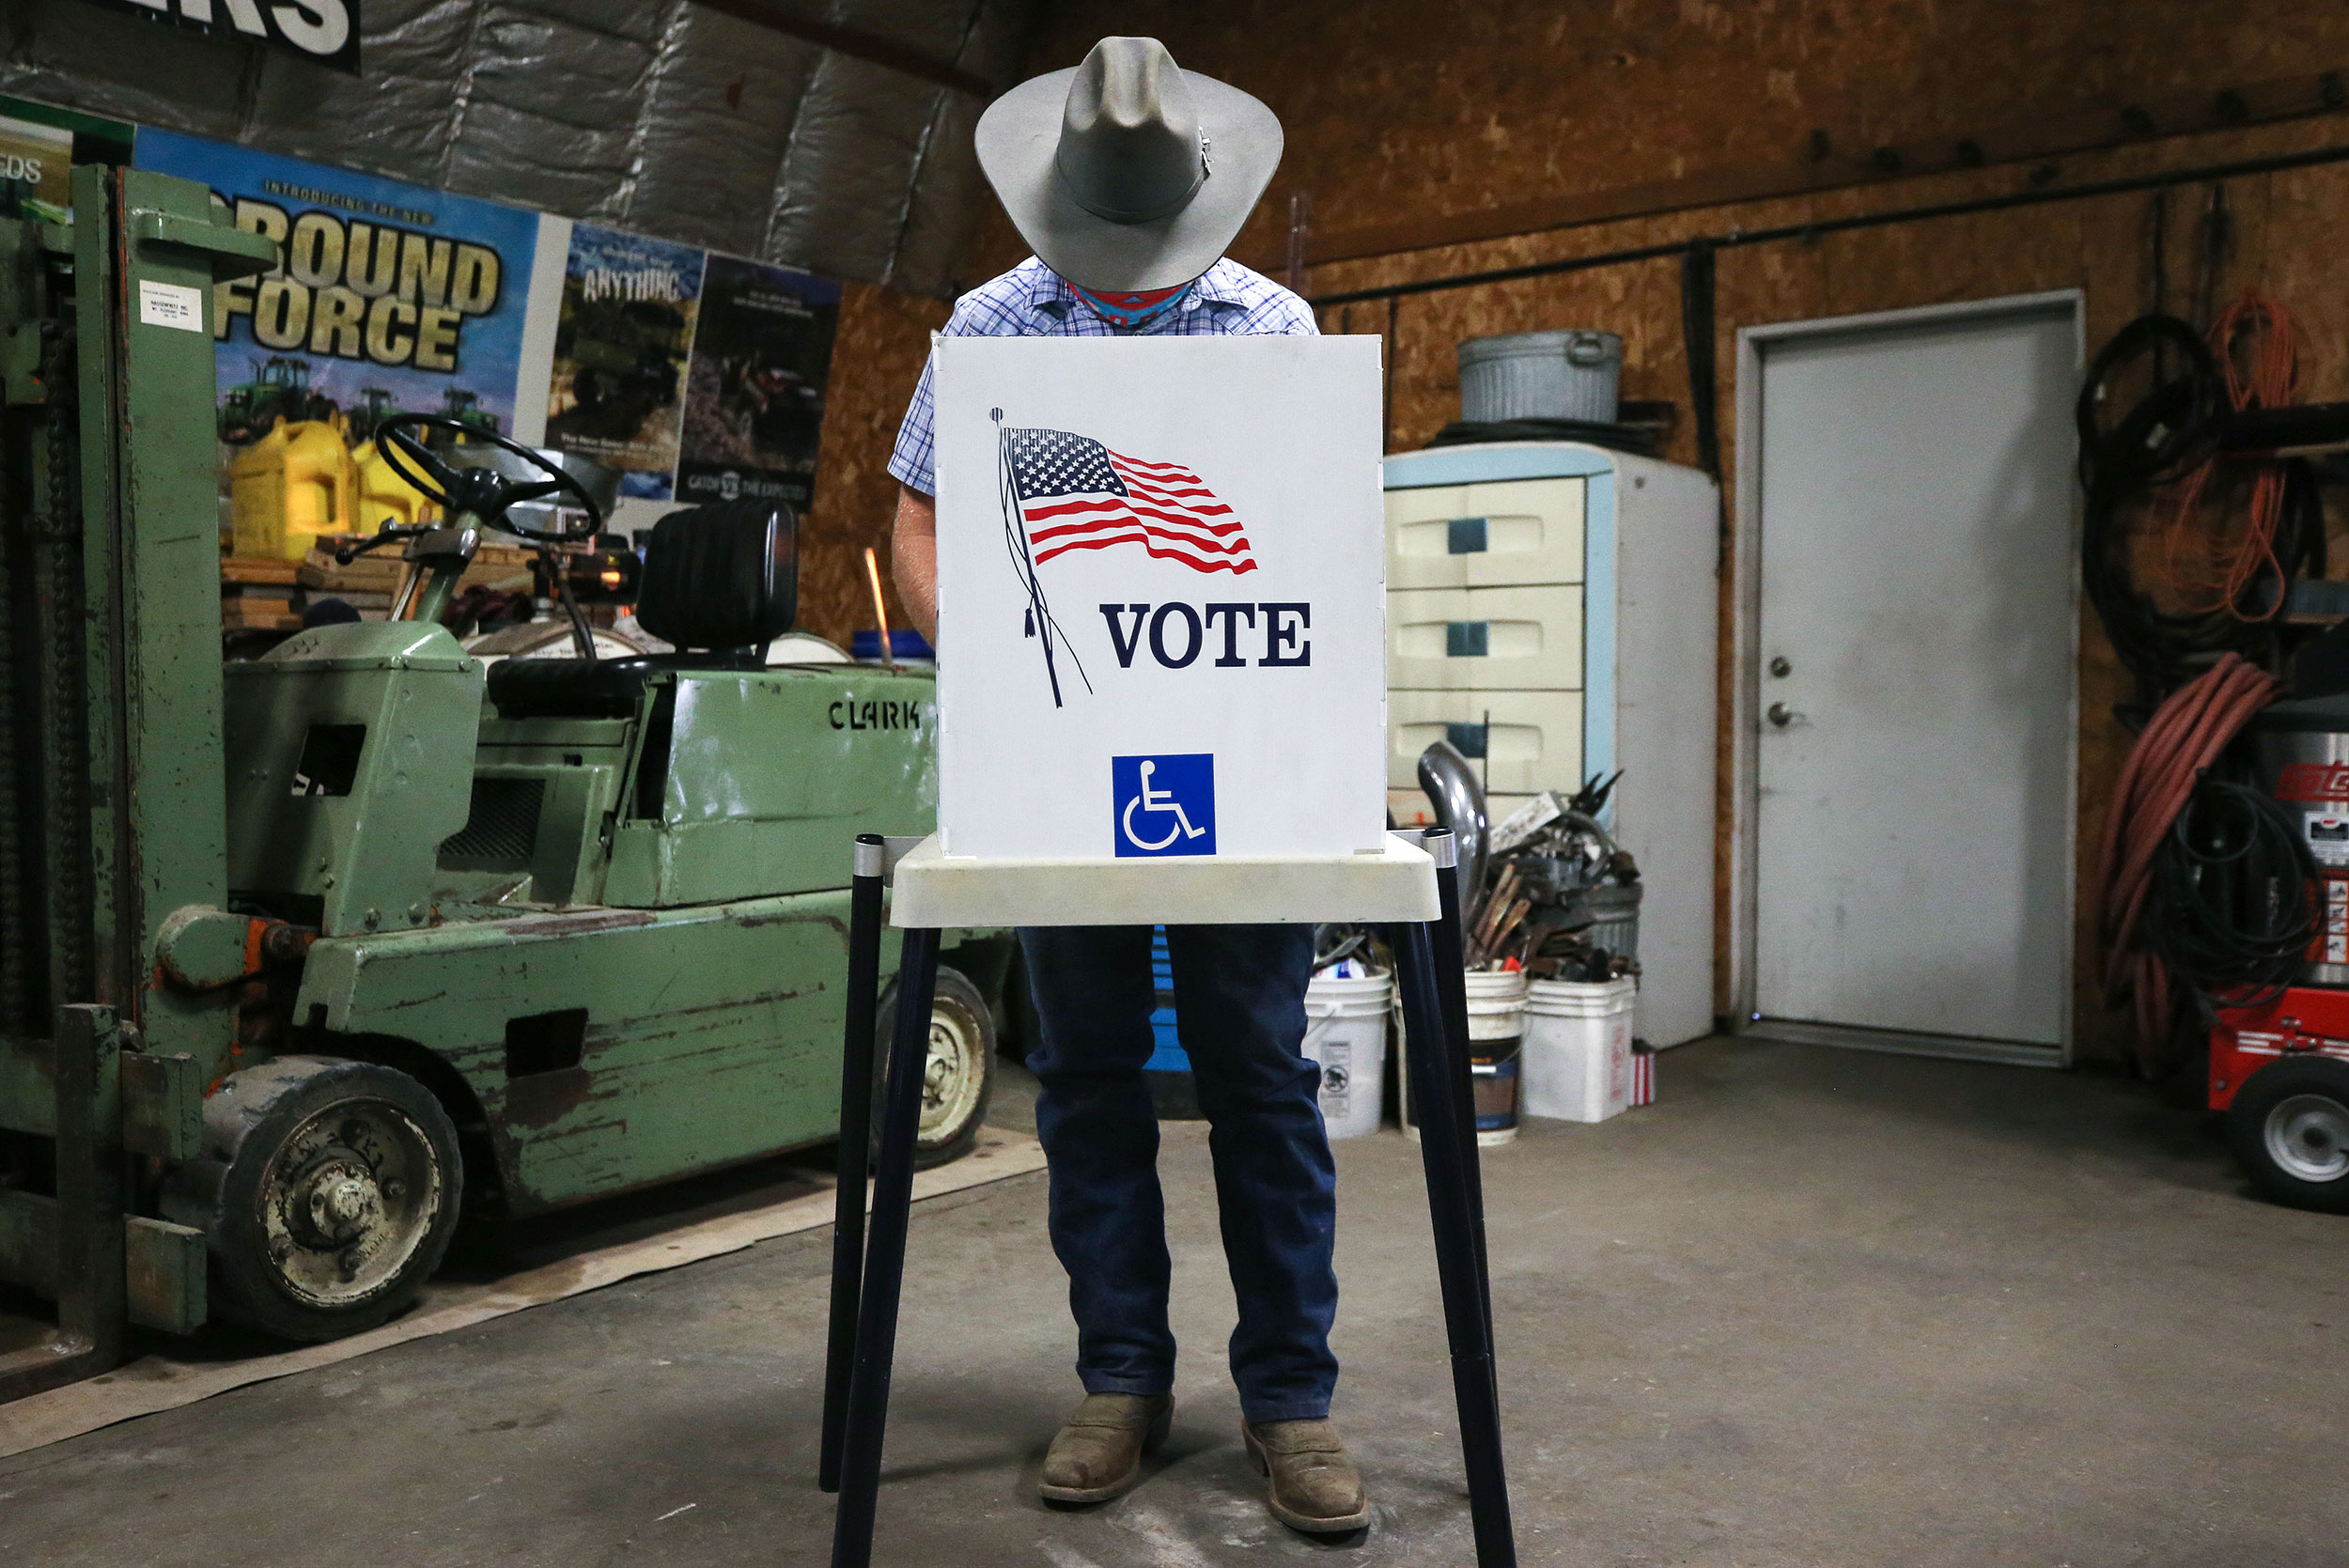 GOP-backed Iowa bill aimed at restricting voting access heads to governor's desk